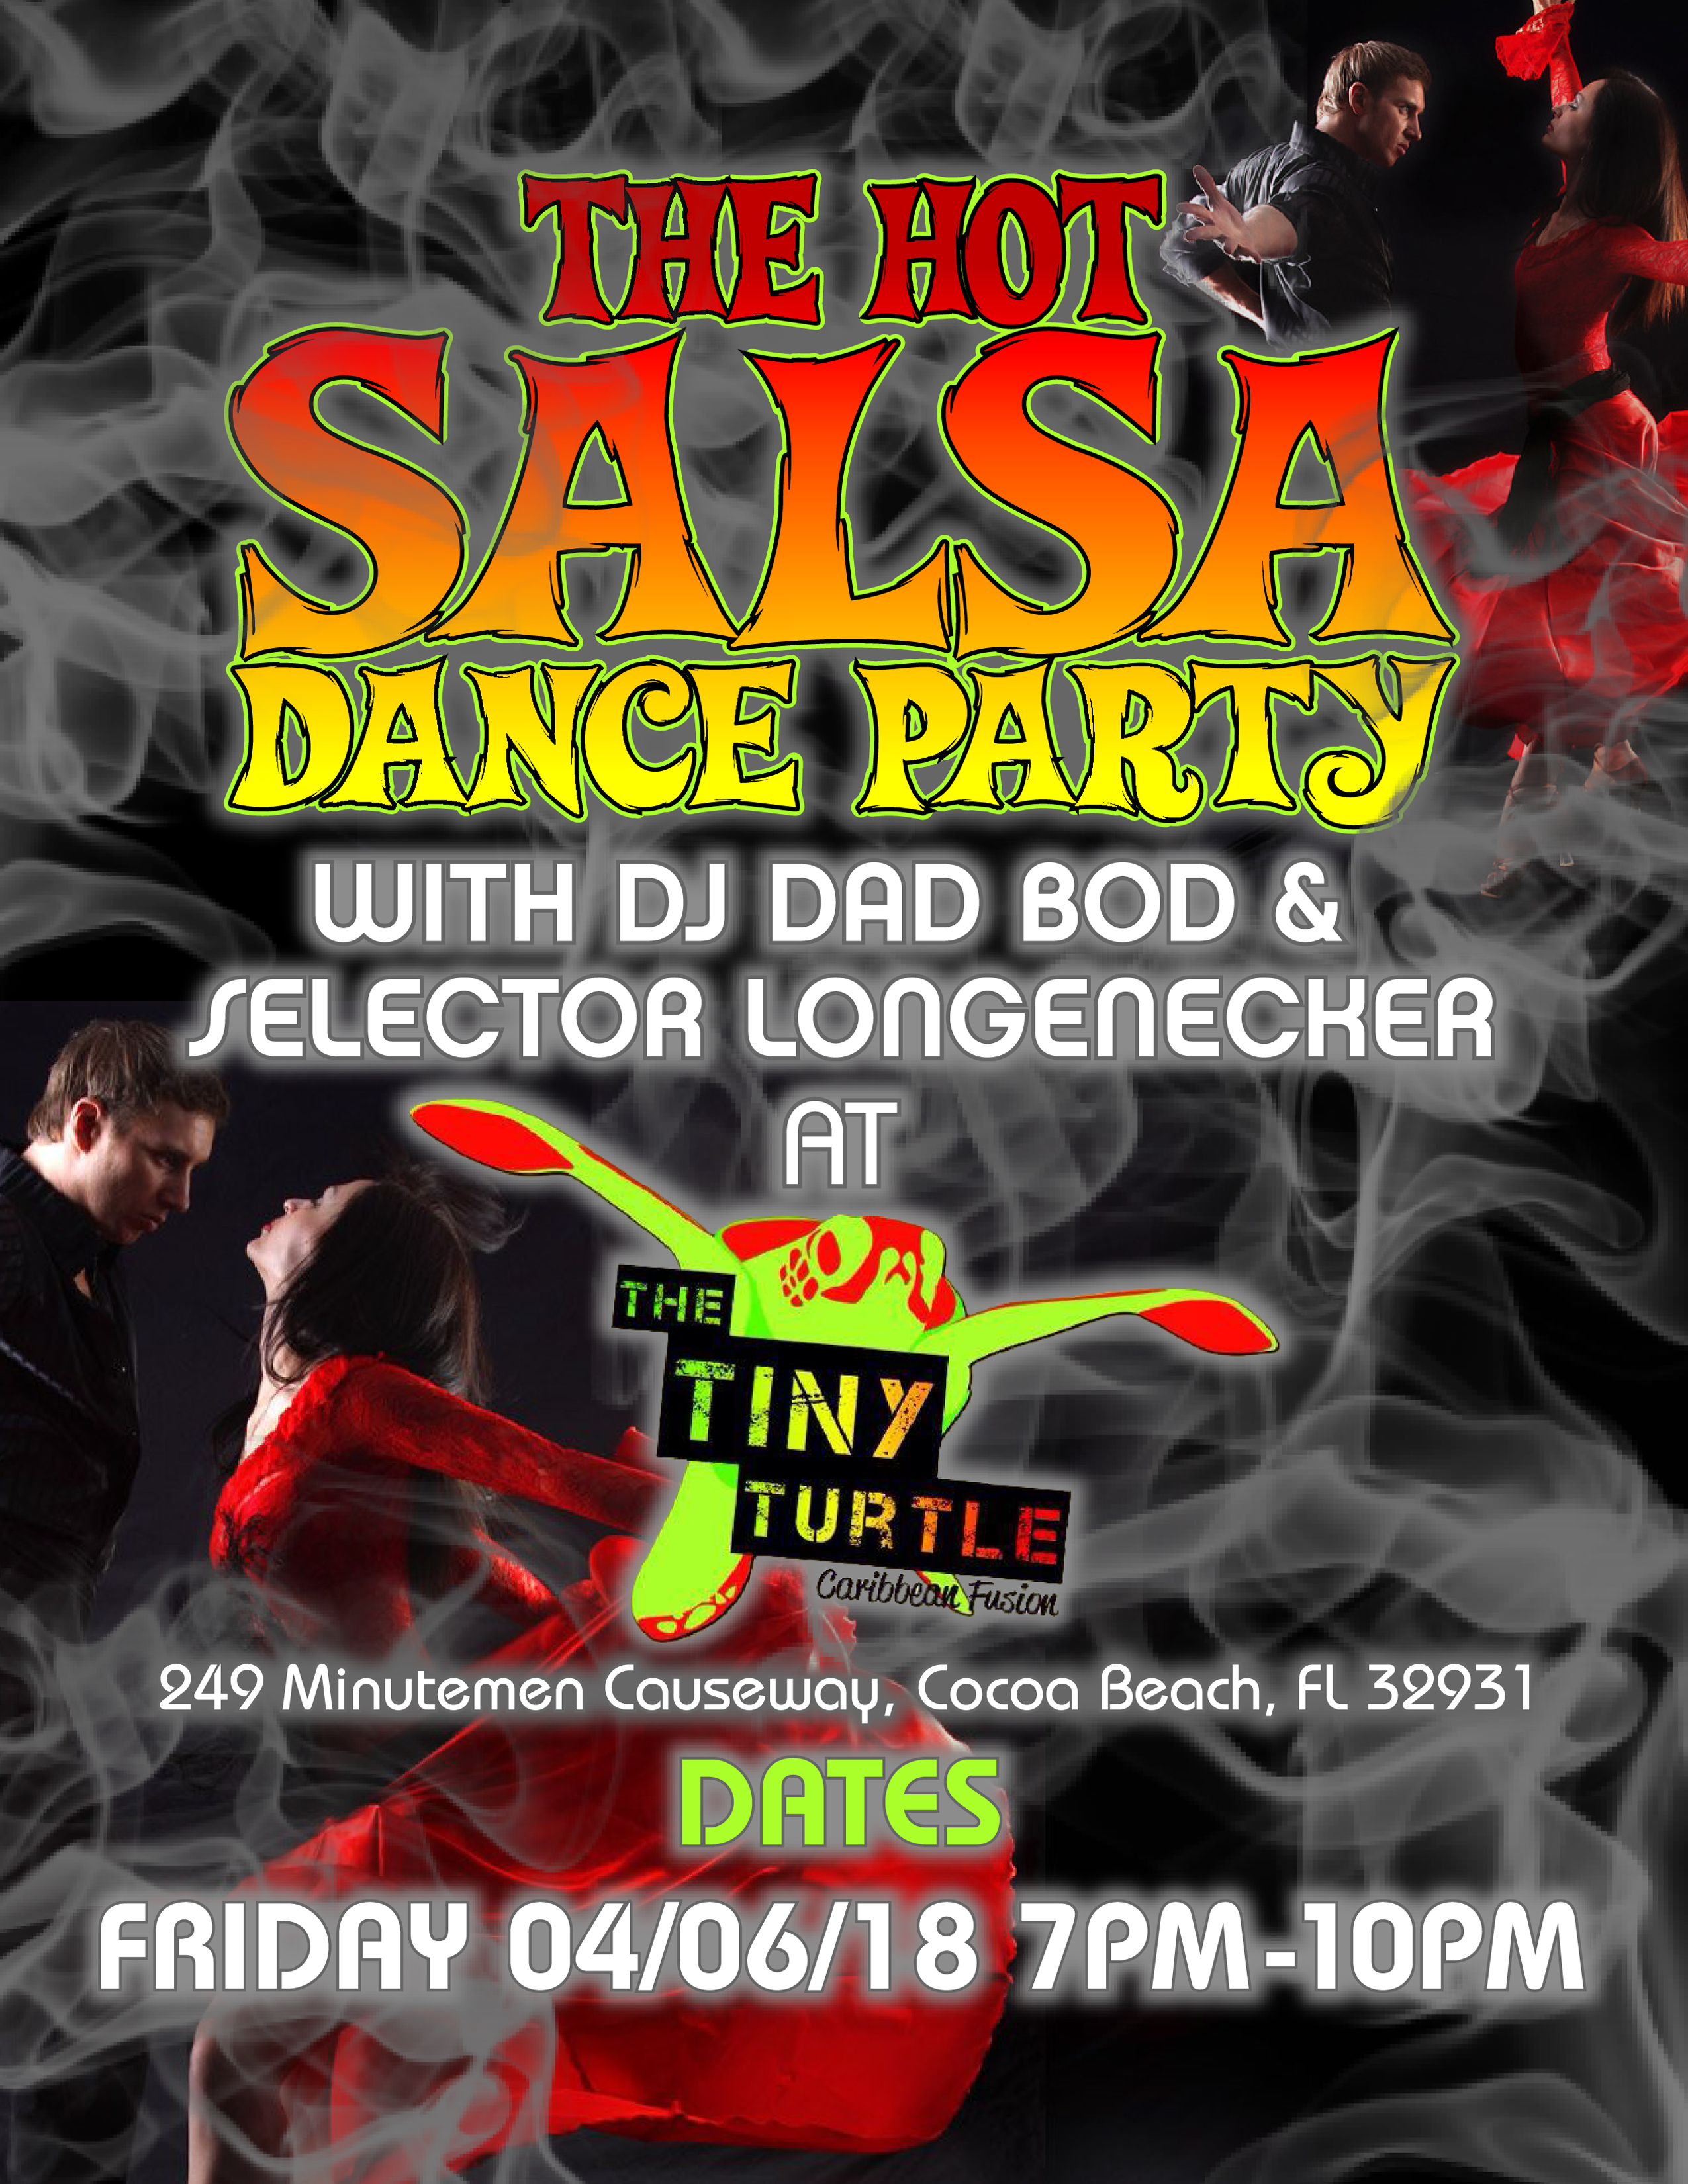 The Hot Salsa Dance Party with Dad Bod & Longenecker 04/06/18